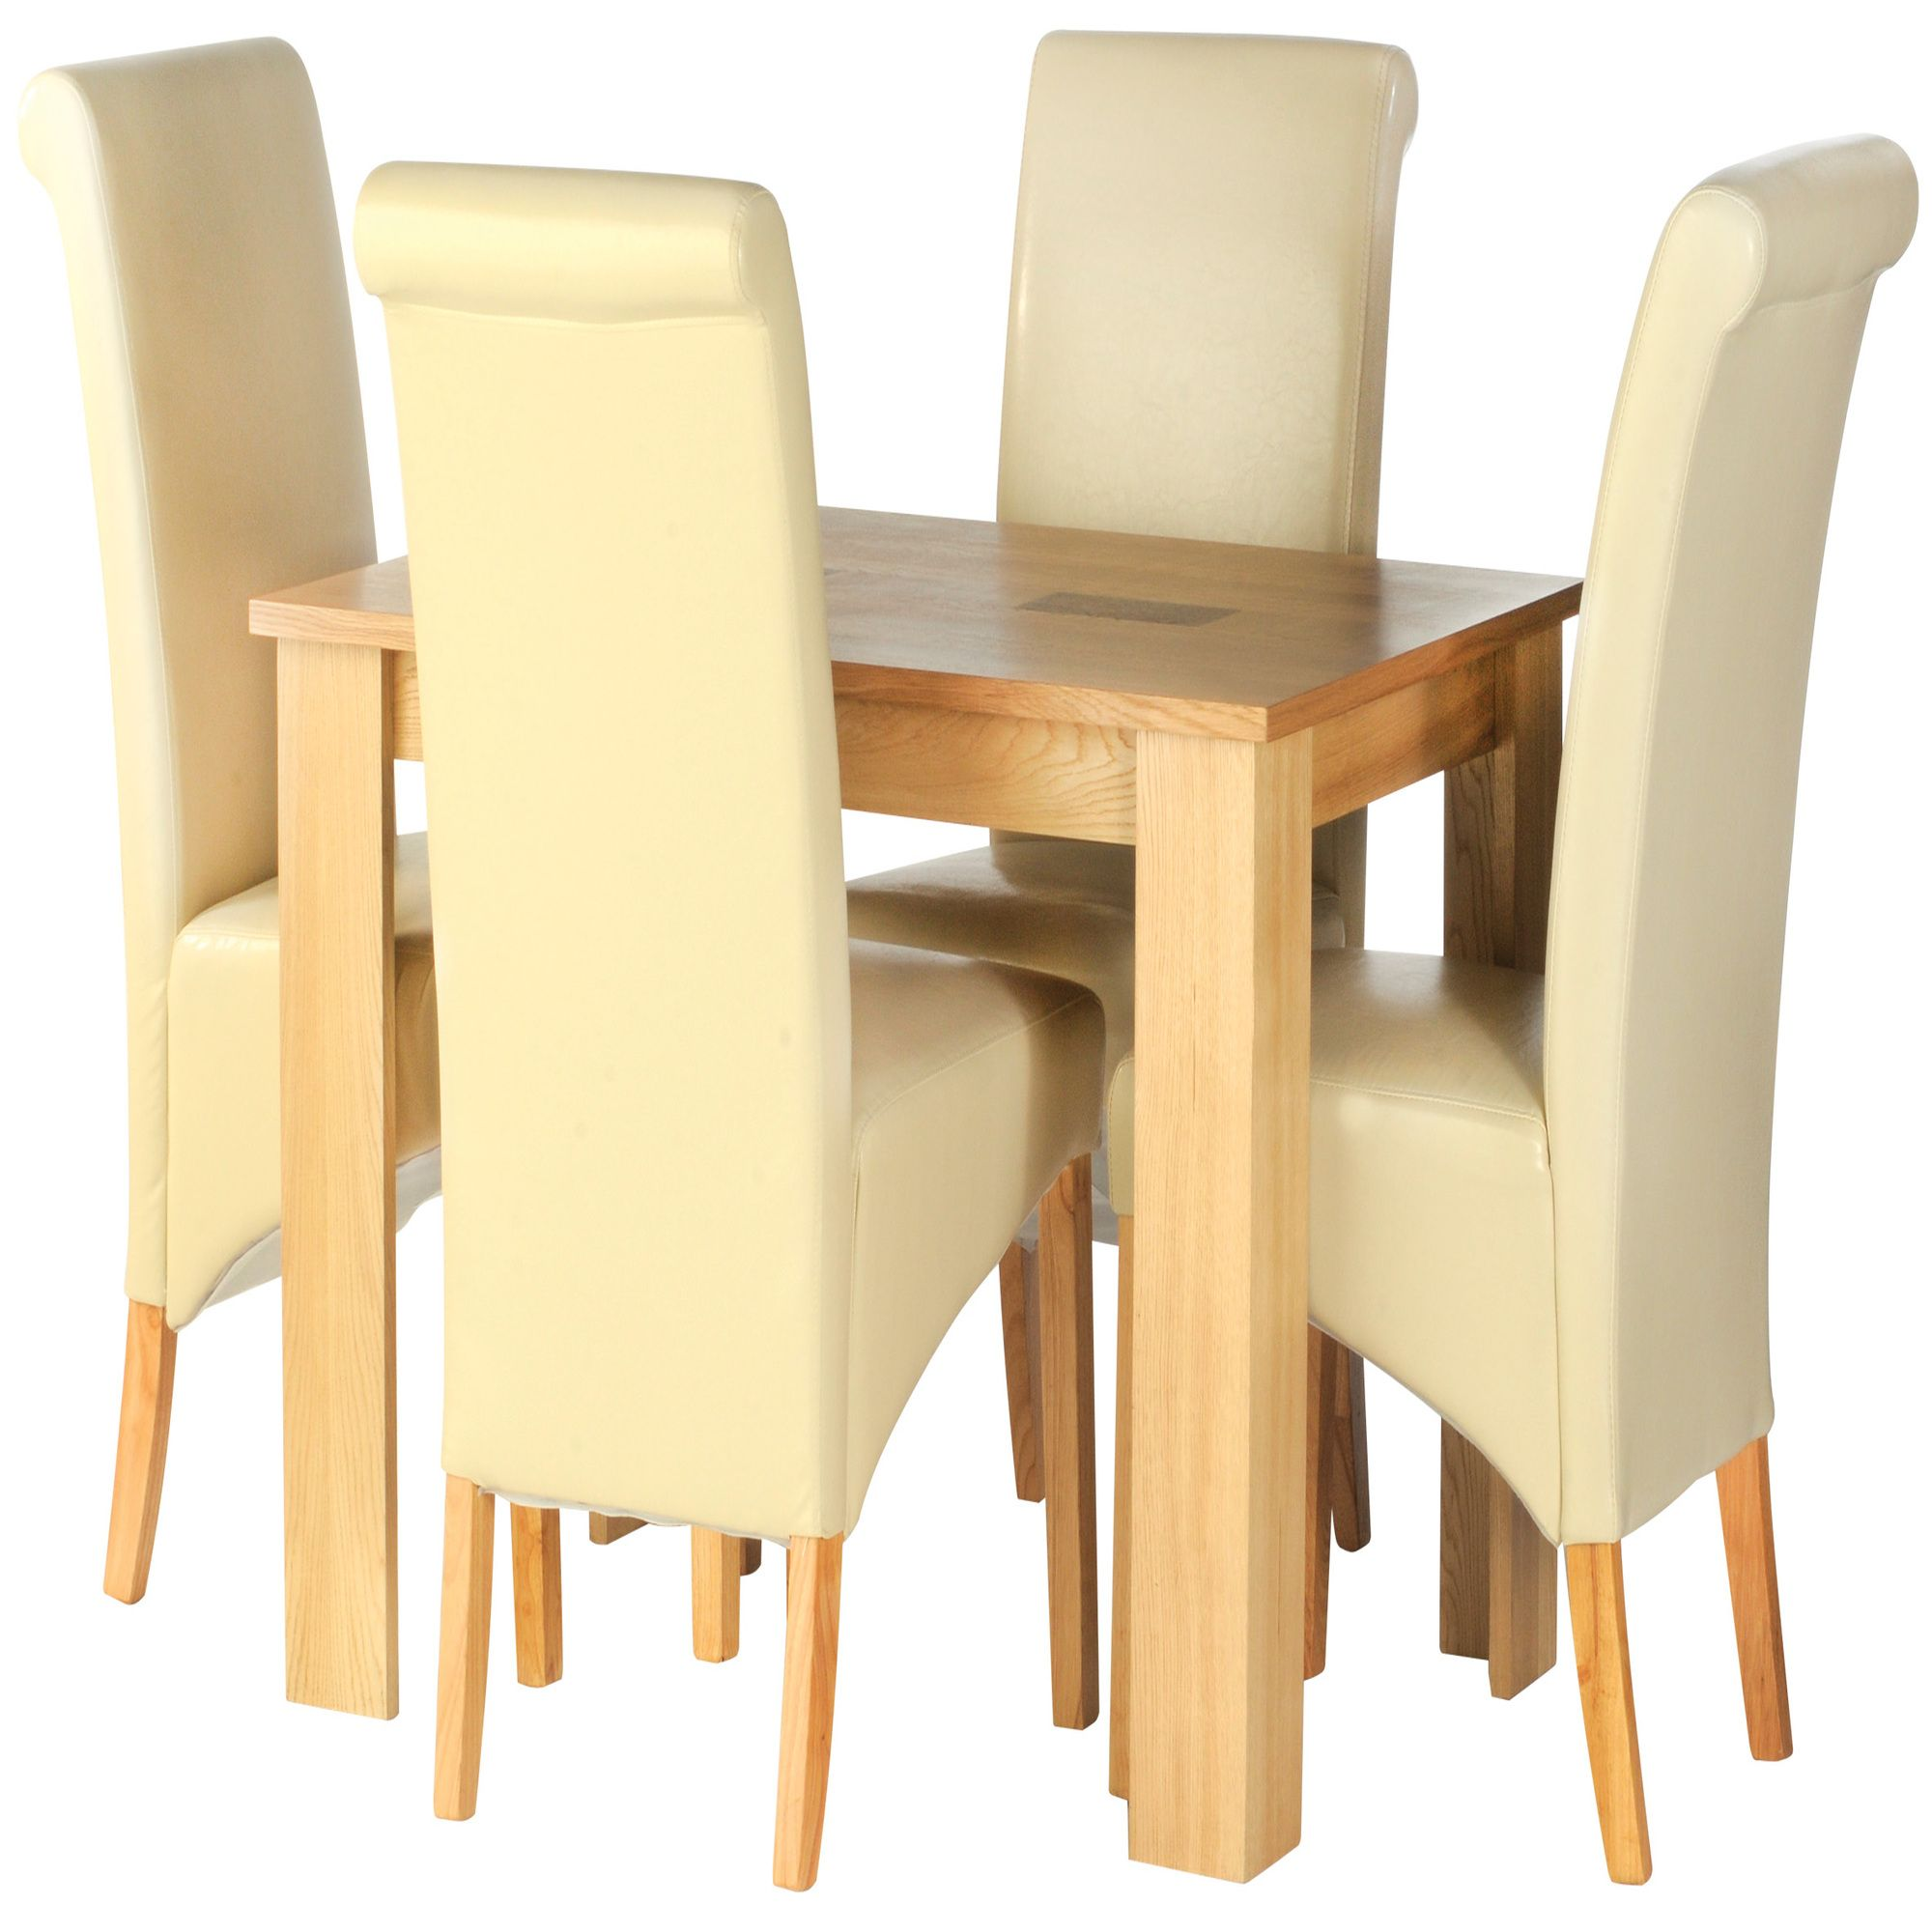 Thorndon Wellington 5 Piece Dining Set Natural Light Oak and Walnut at Tesco Direct